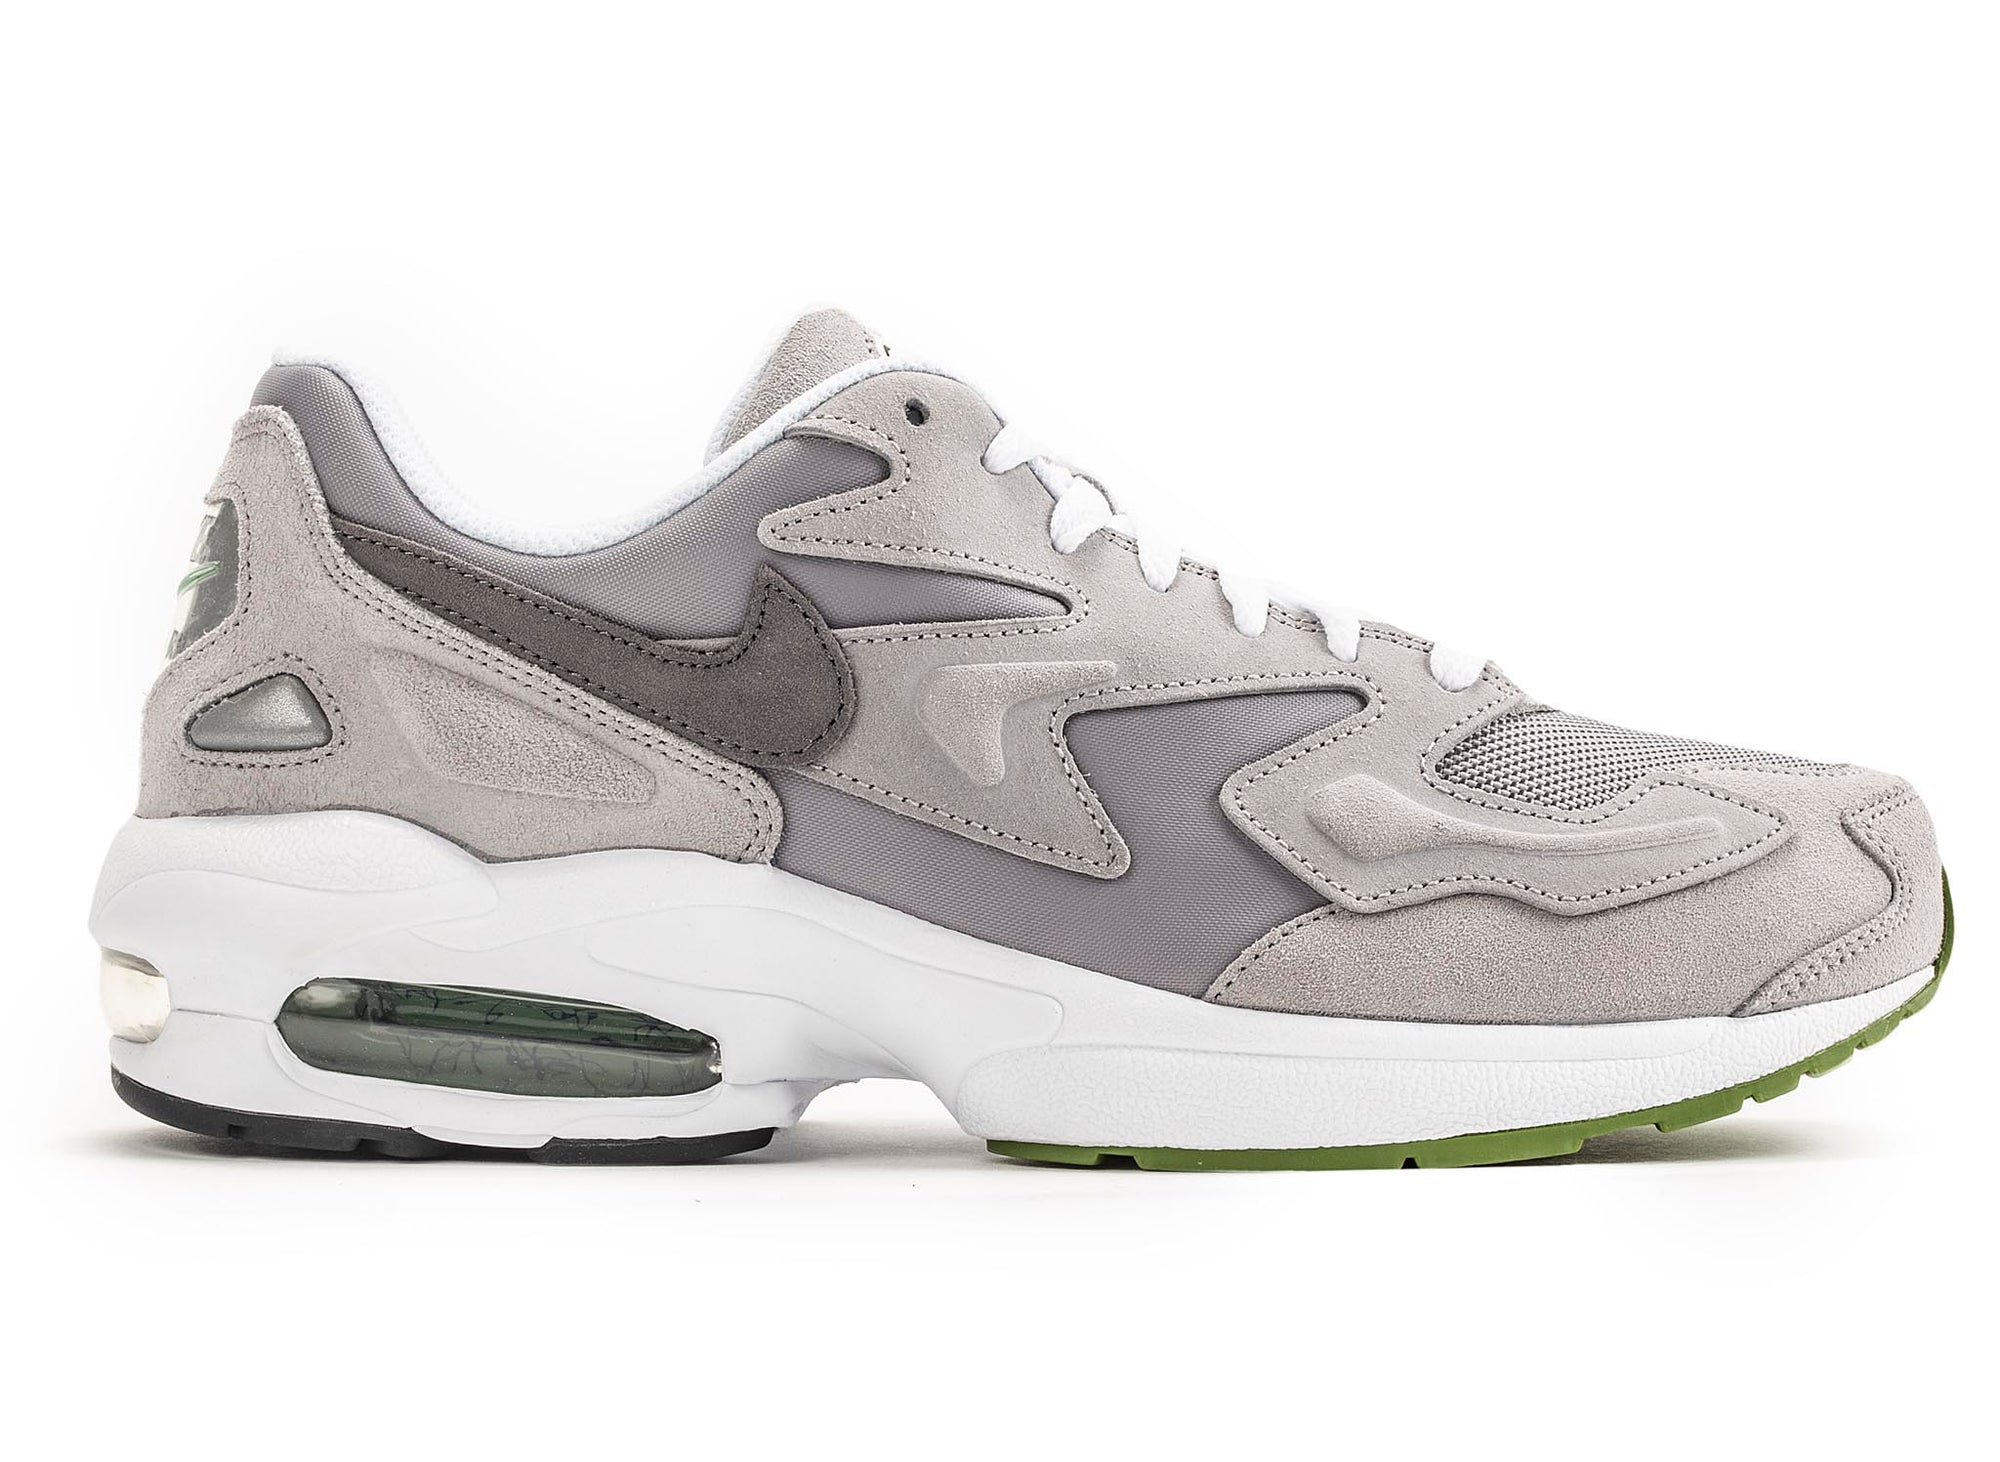 Nike Air Max 2 Light LX 'Atmosphere Grey'